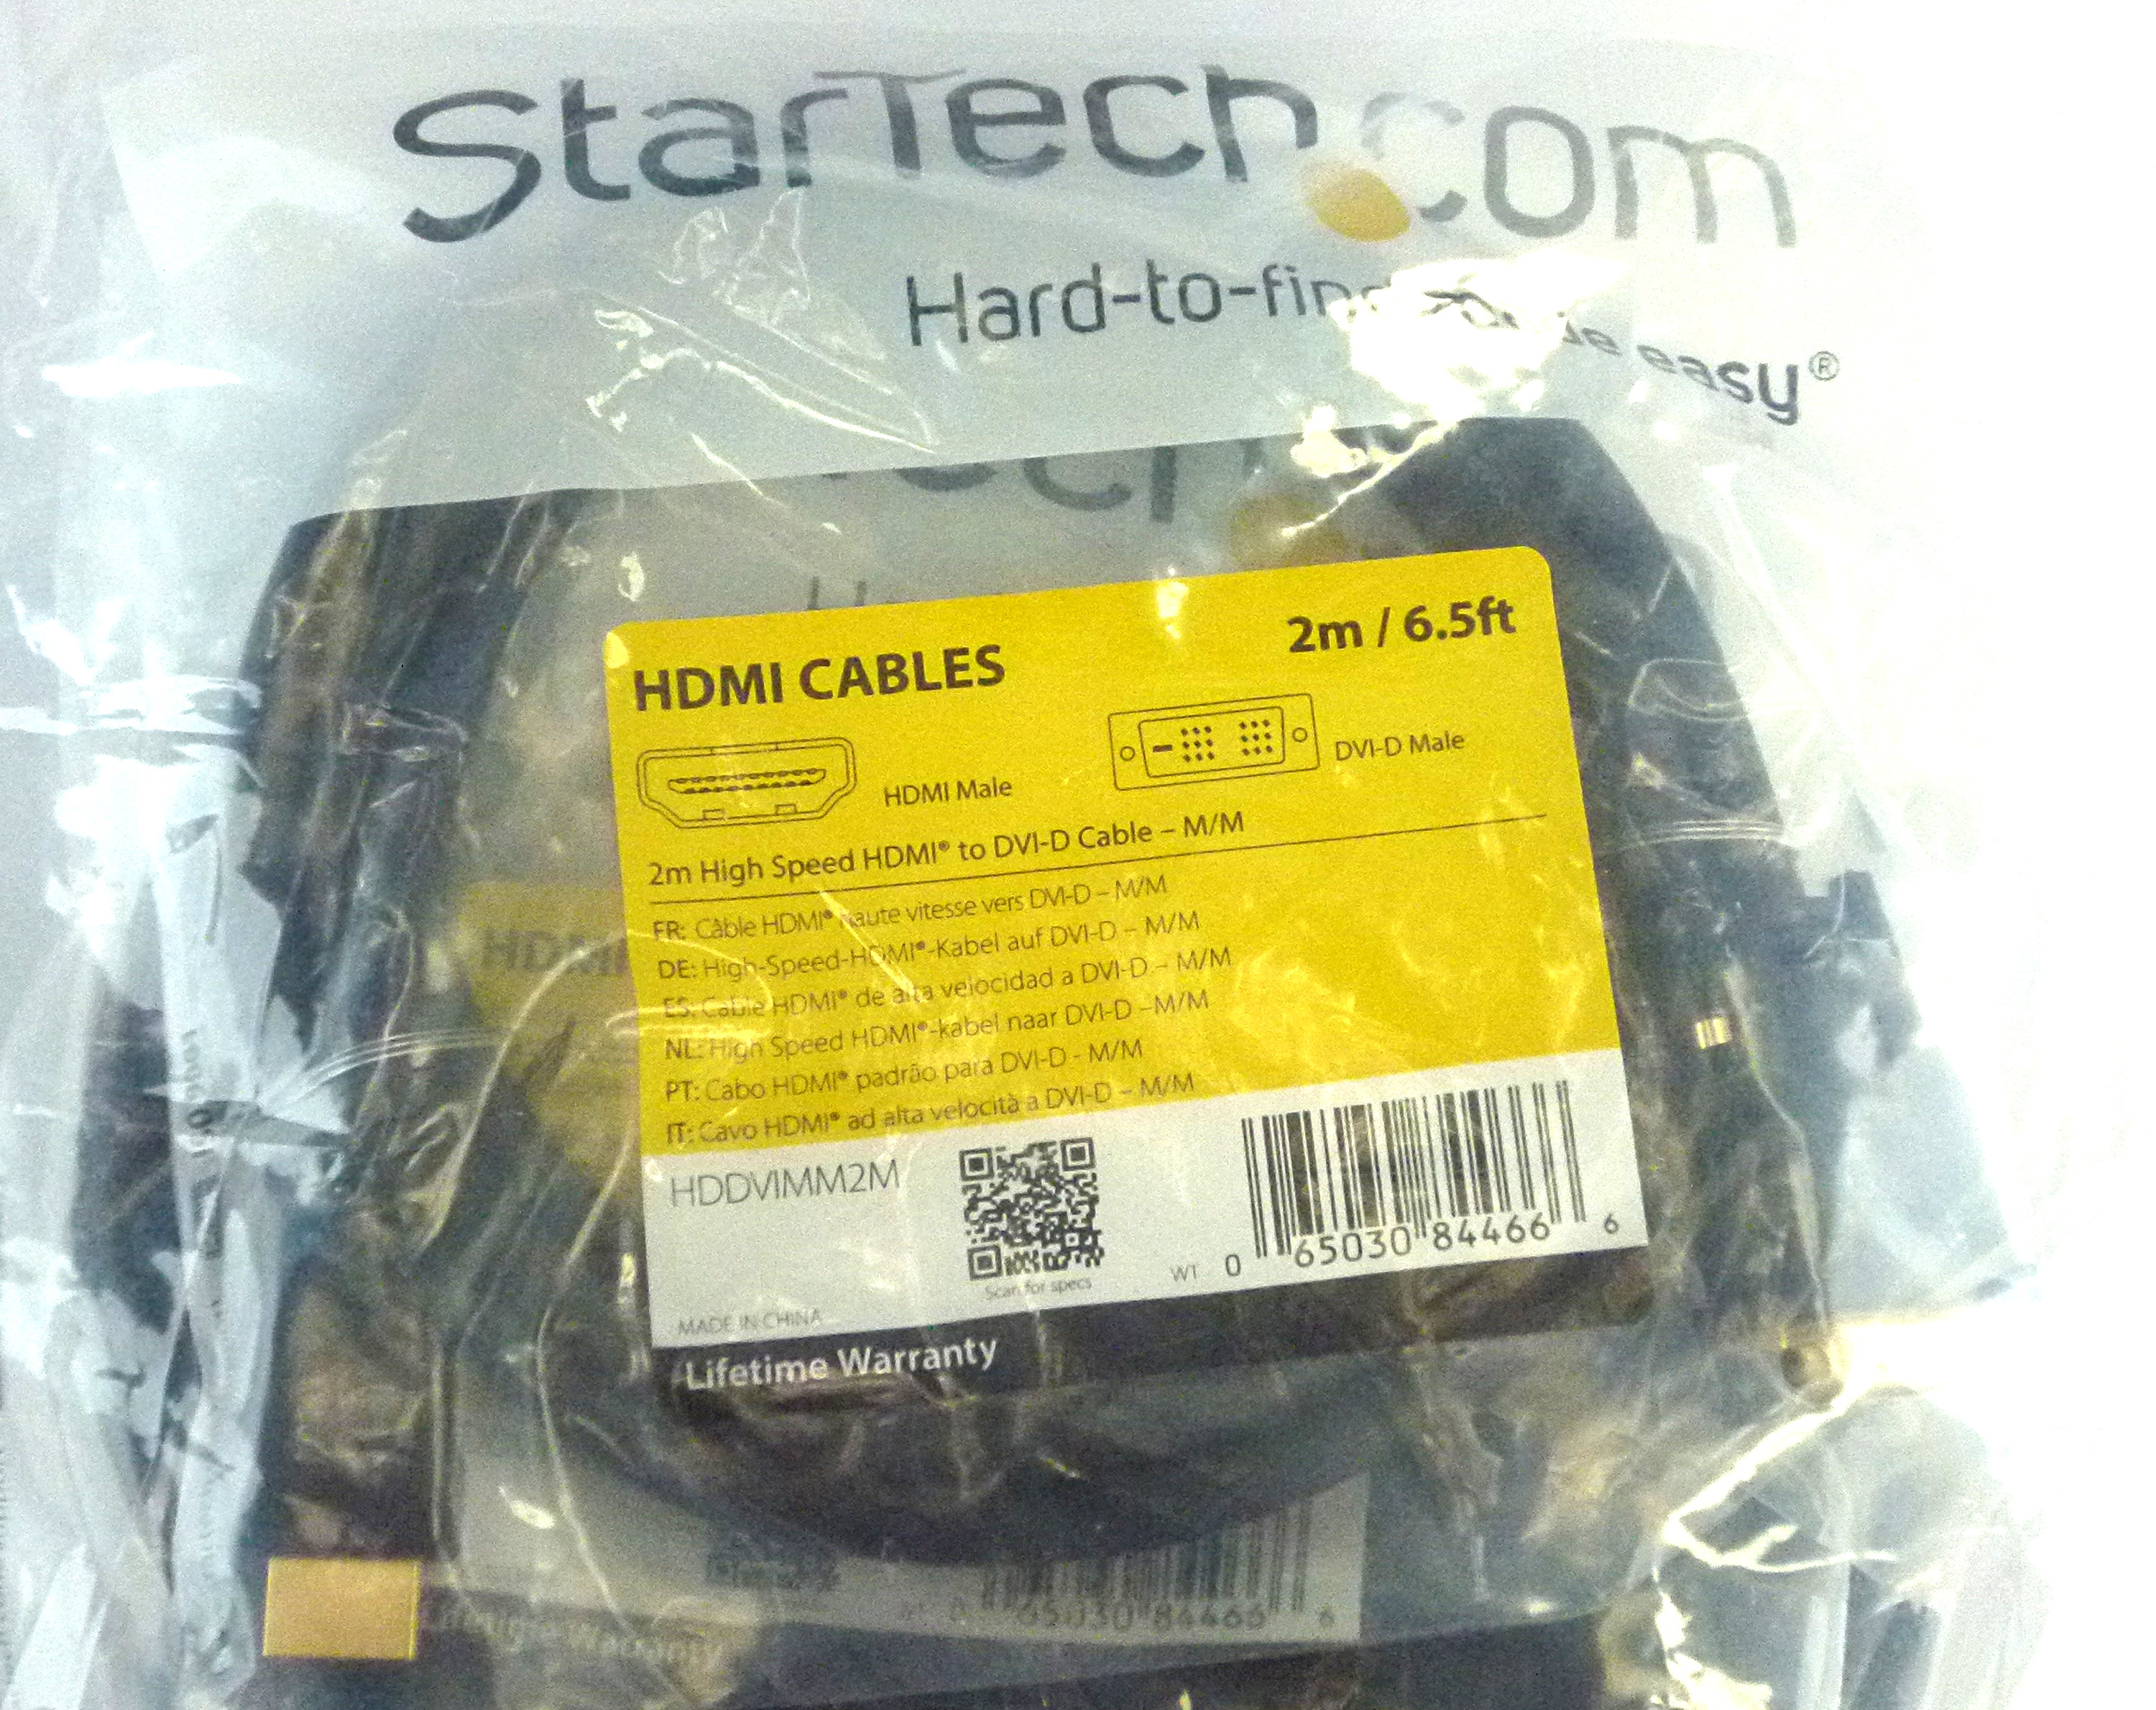 Pack Of 10x New Startech HDDVIMM2M 2m High Speed HDMI To DVI-D Cable